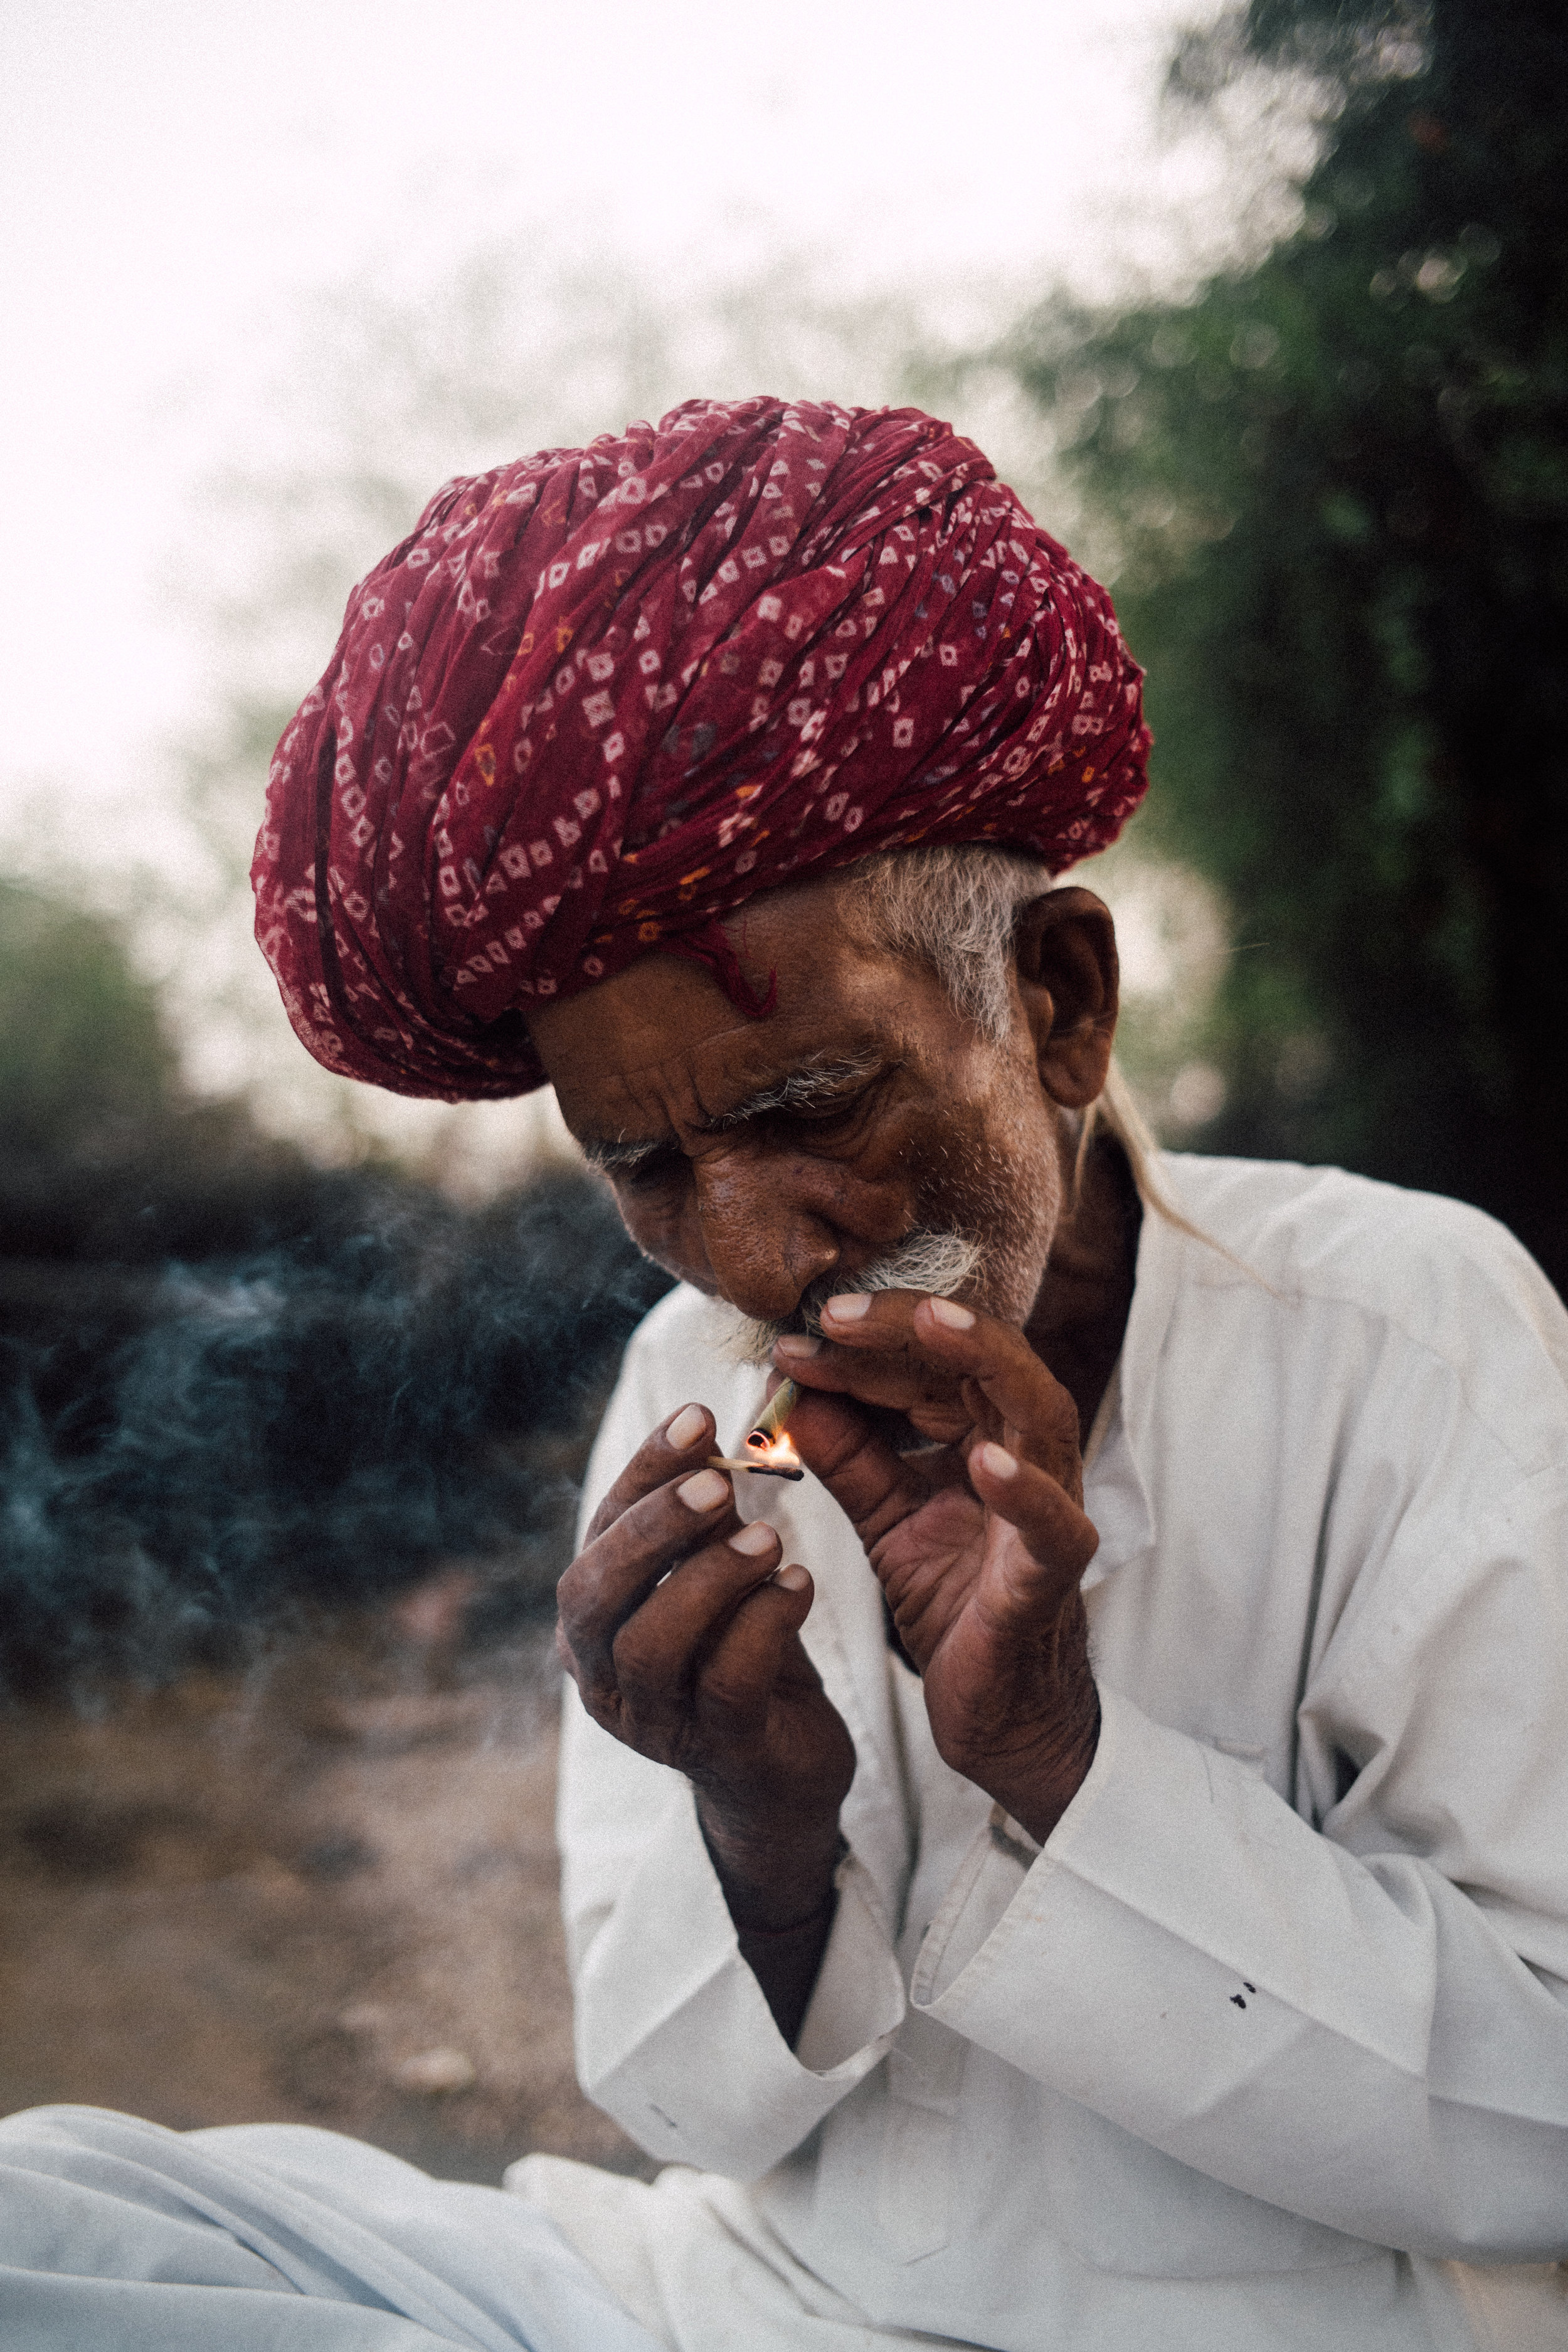 A Bishnoi village local roles and lights a cigarette as the sun behind him sets.